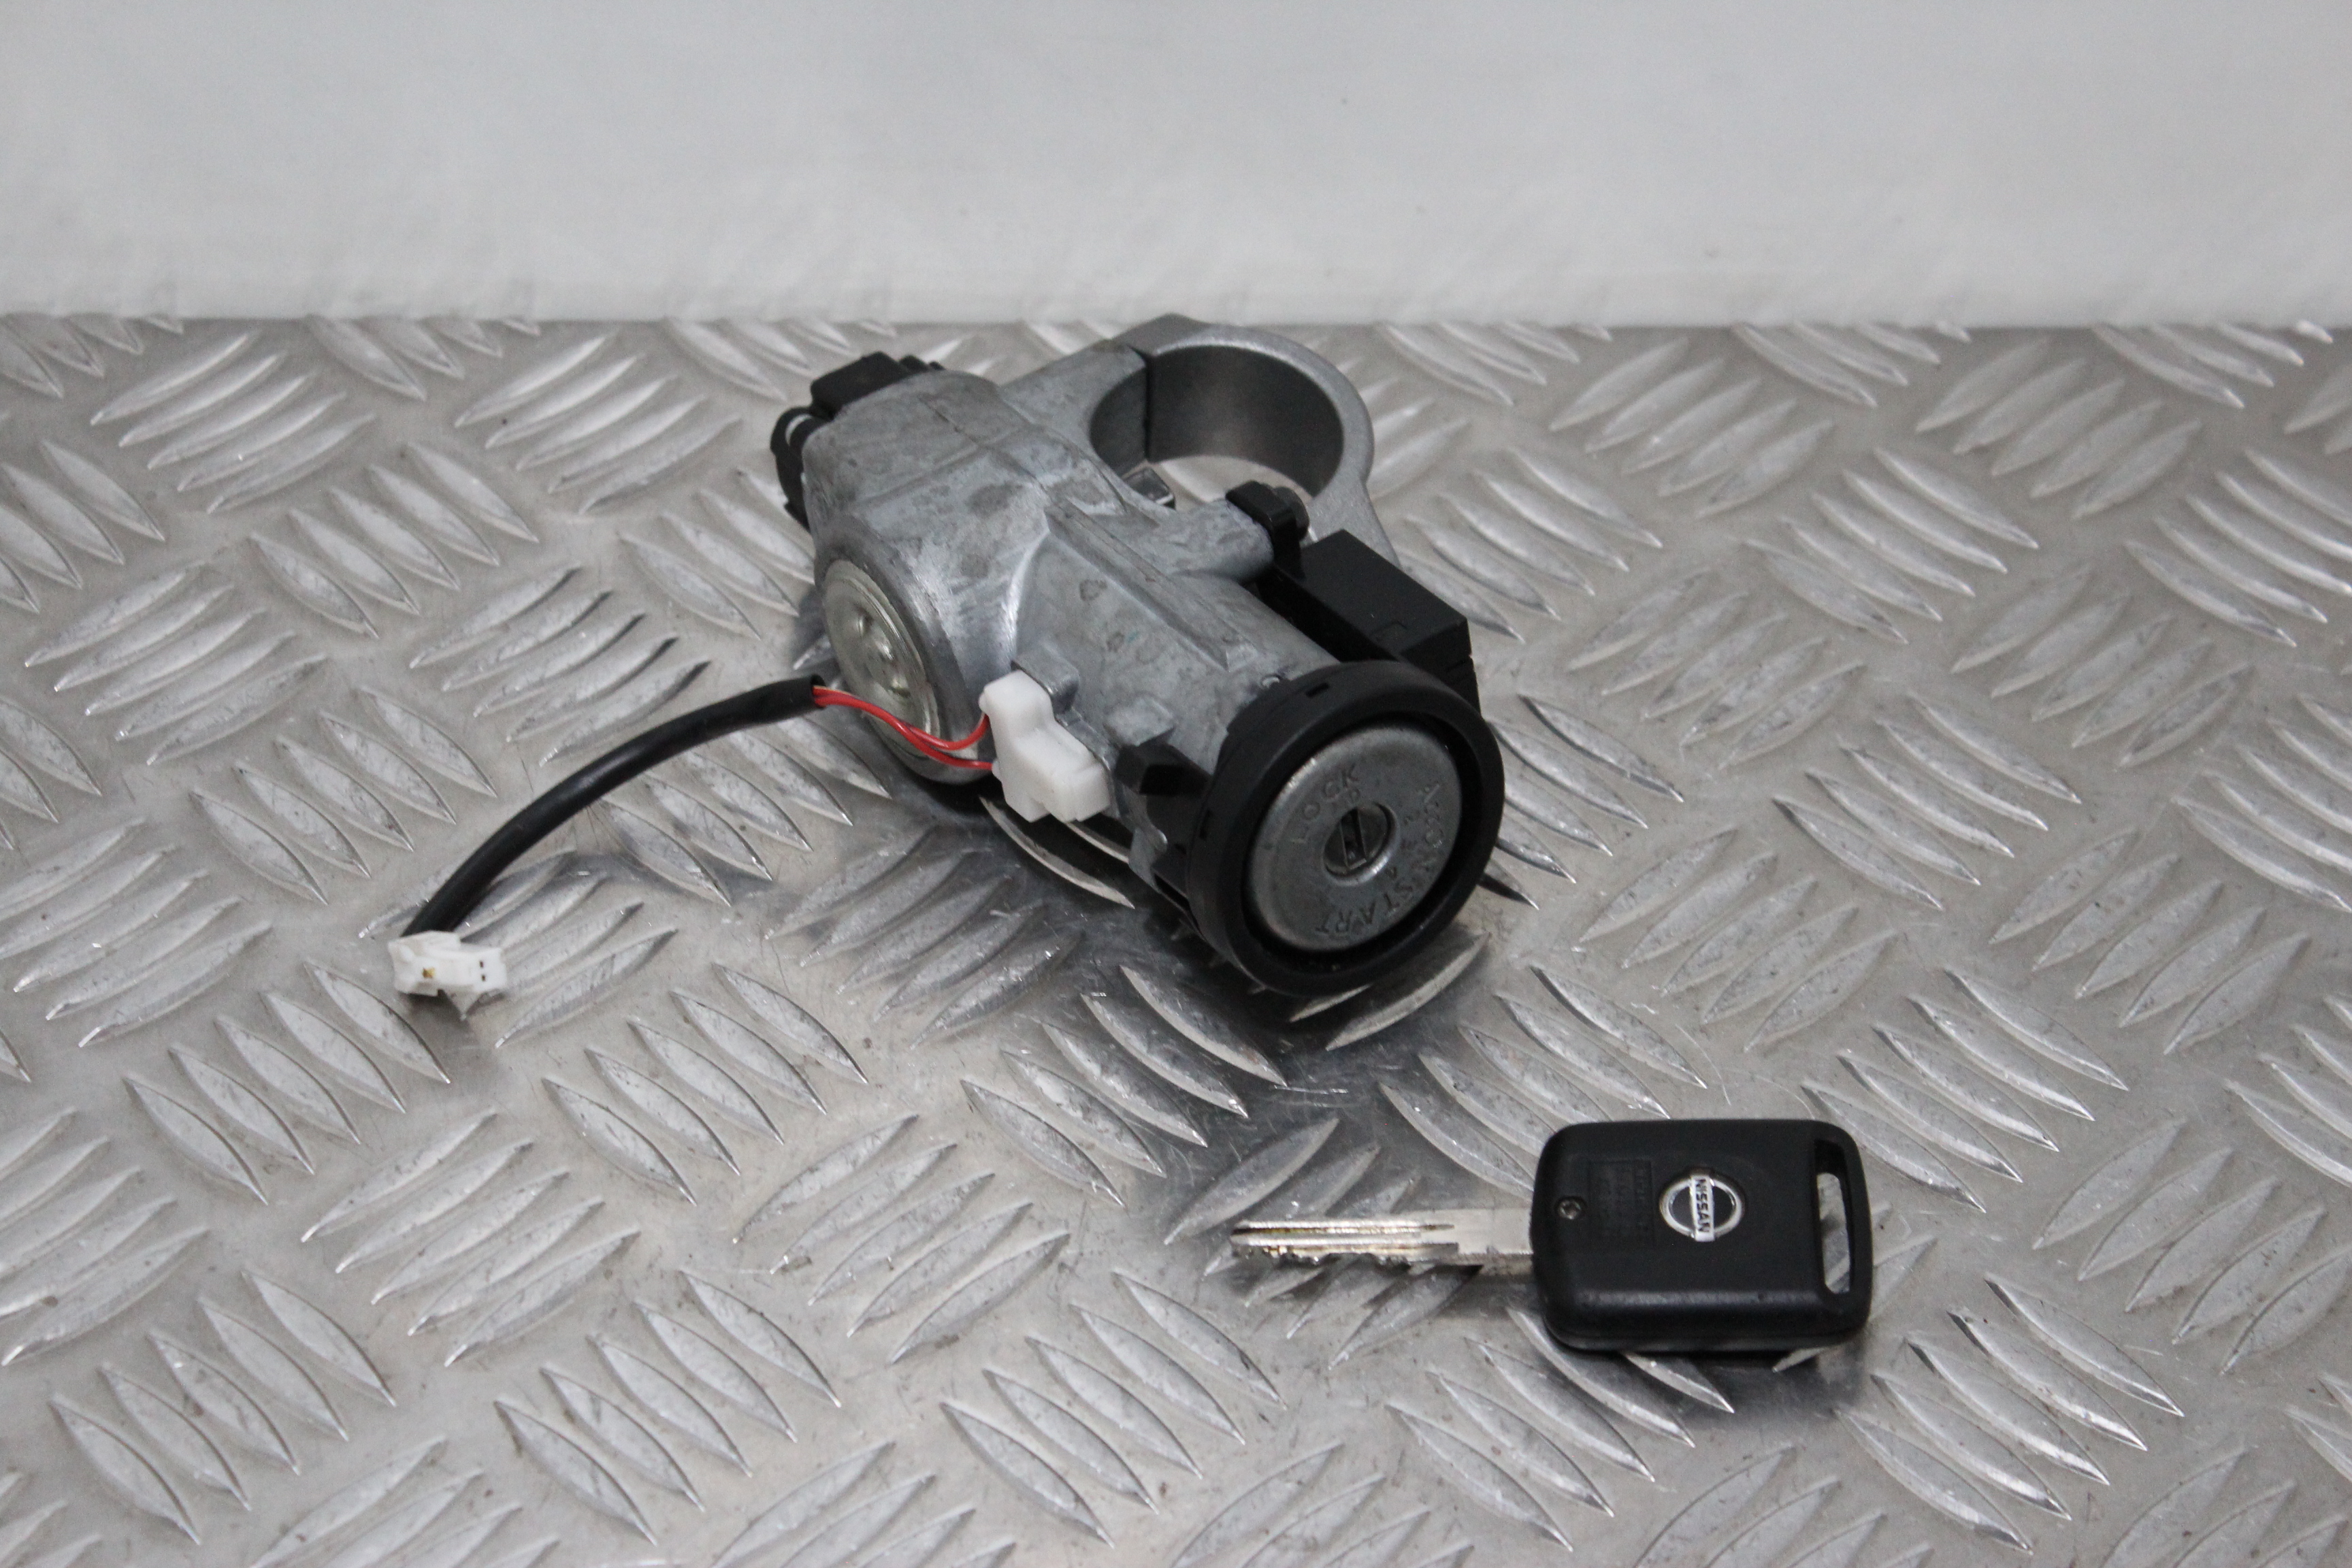 Nissan Qashqai Ignition Switch With Key Removed From Similar Vehicle